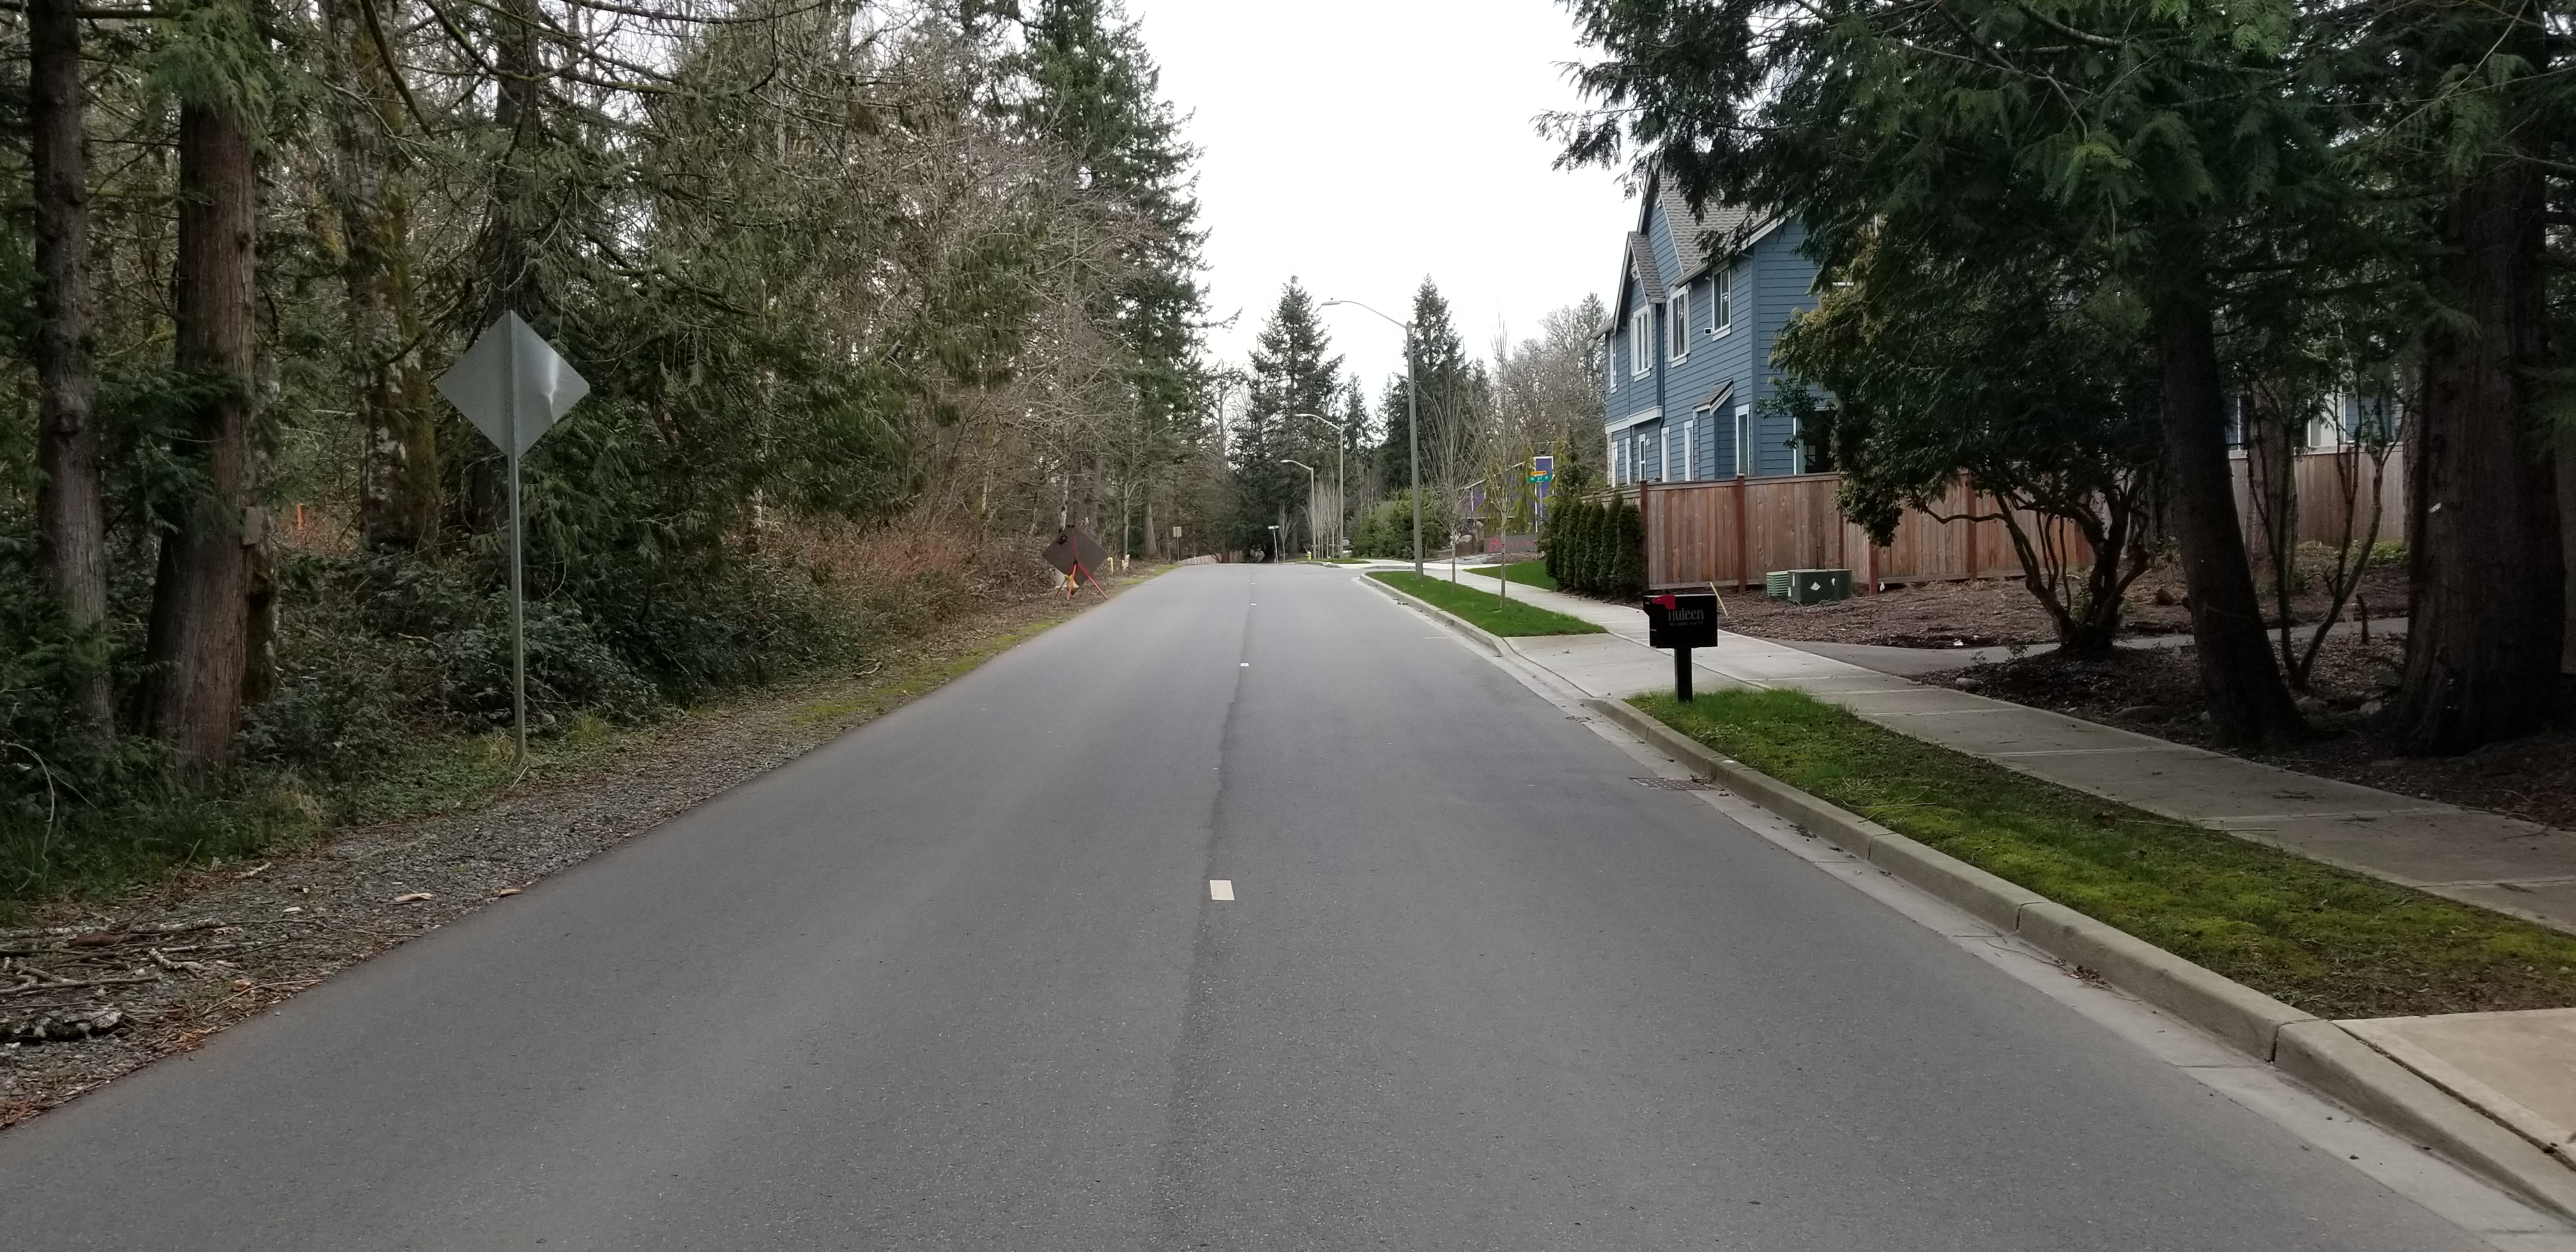 Section of 218th Ave SE as it exists today, as a two-lane road with grass on the left side and sidewalk on the right side bordering a neighborhood development